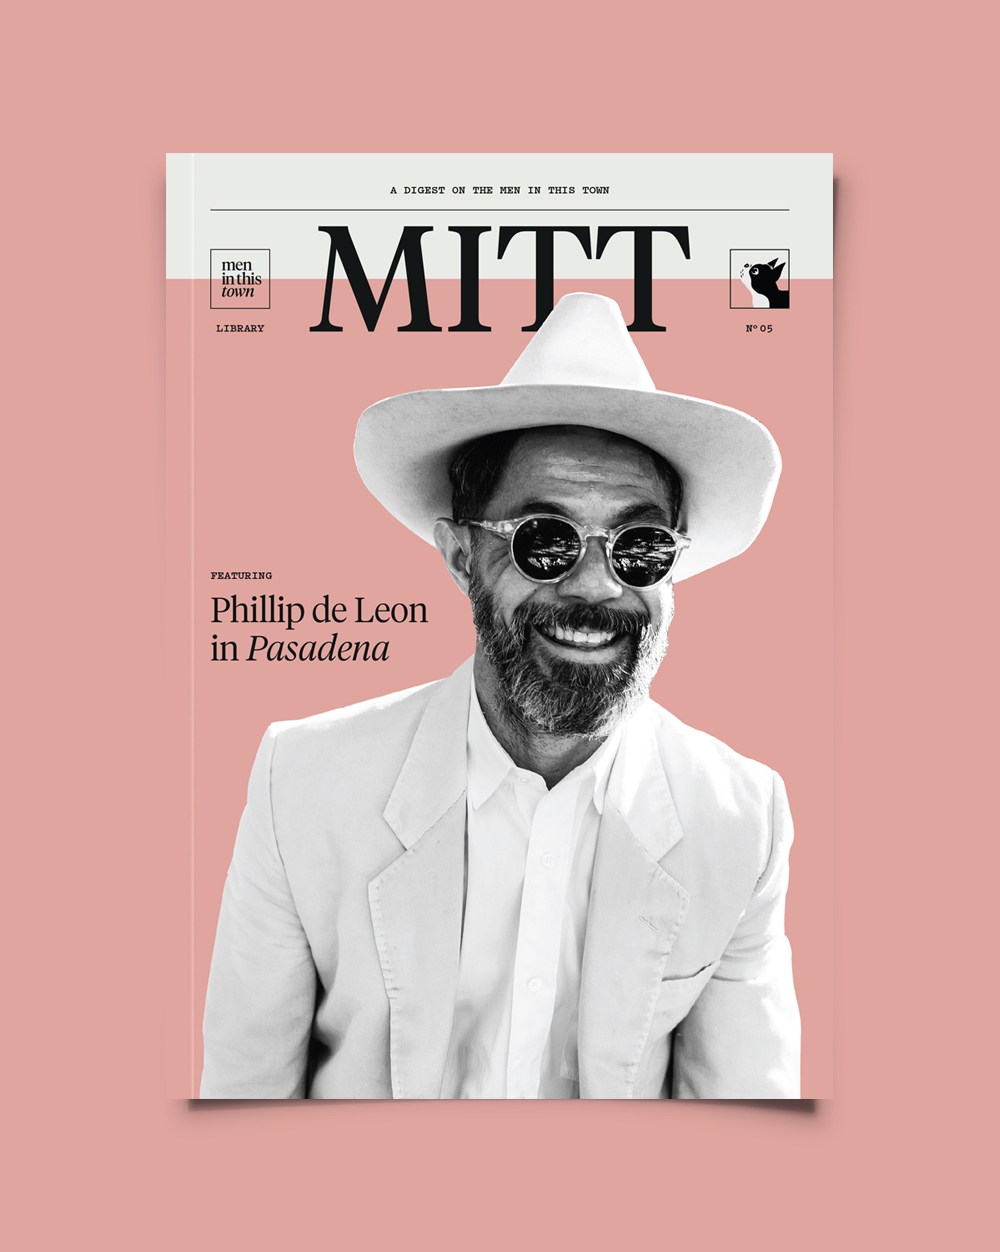 I'm so excited to finally reveal the fifth cover of   MITT   magazine, featuring  Phillip de Leon , photographed by Jeremy Perkins in Pasadena.  I cannot be more proud of this issue as a whole, with inspiring features from around the world by incredible contributors including Alan Weedon, Chris Aadland, Ryan MacDonald, Ali Asghar, François Cavelier, Katelan Cunningham, Andrew Geeves, Pakawat Hongcharoen, Kimberlee Oo and Peter Rosewarne. Thank you for making this the best issue yet!  The fifth issue is now available to   pre-order   and will be shipping out worldwide on  October 1st !